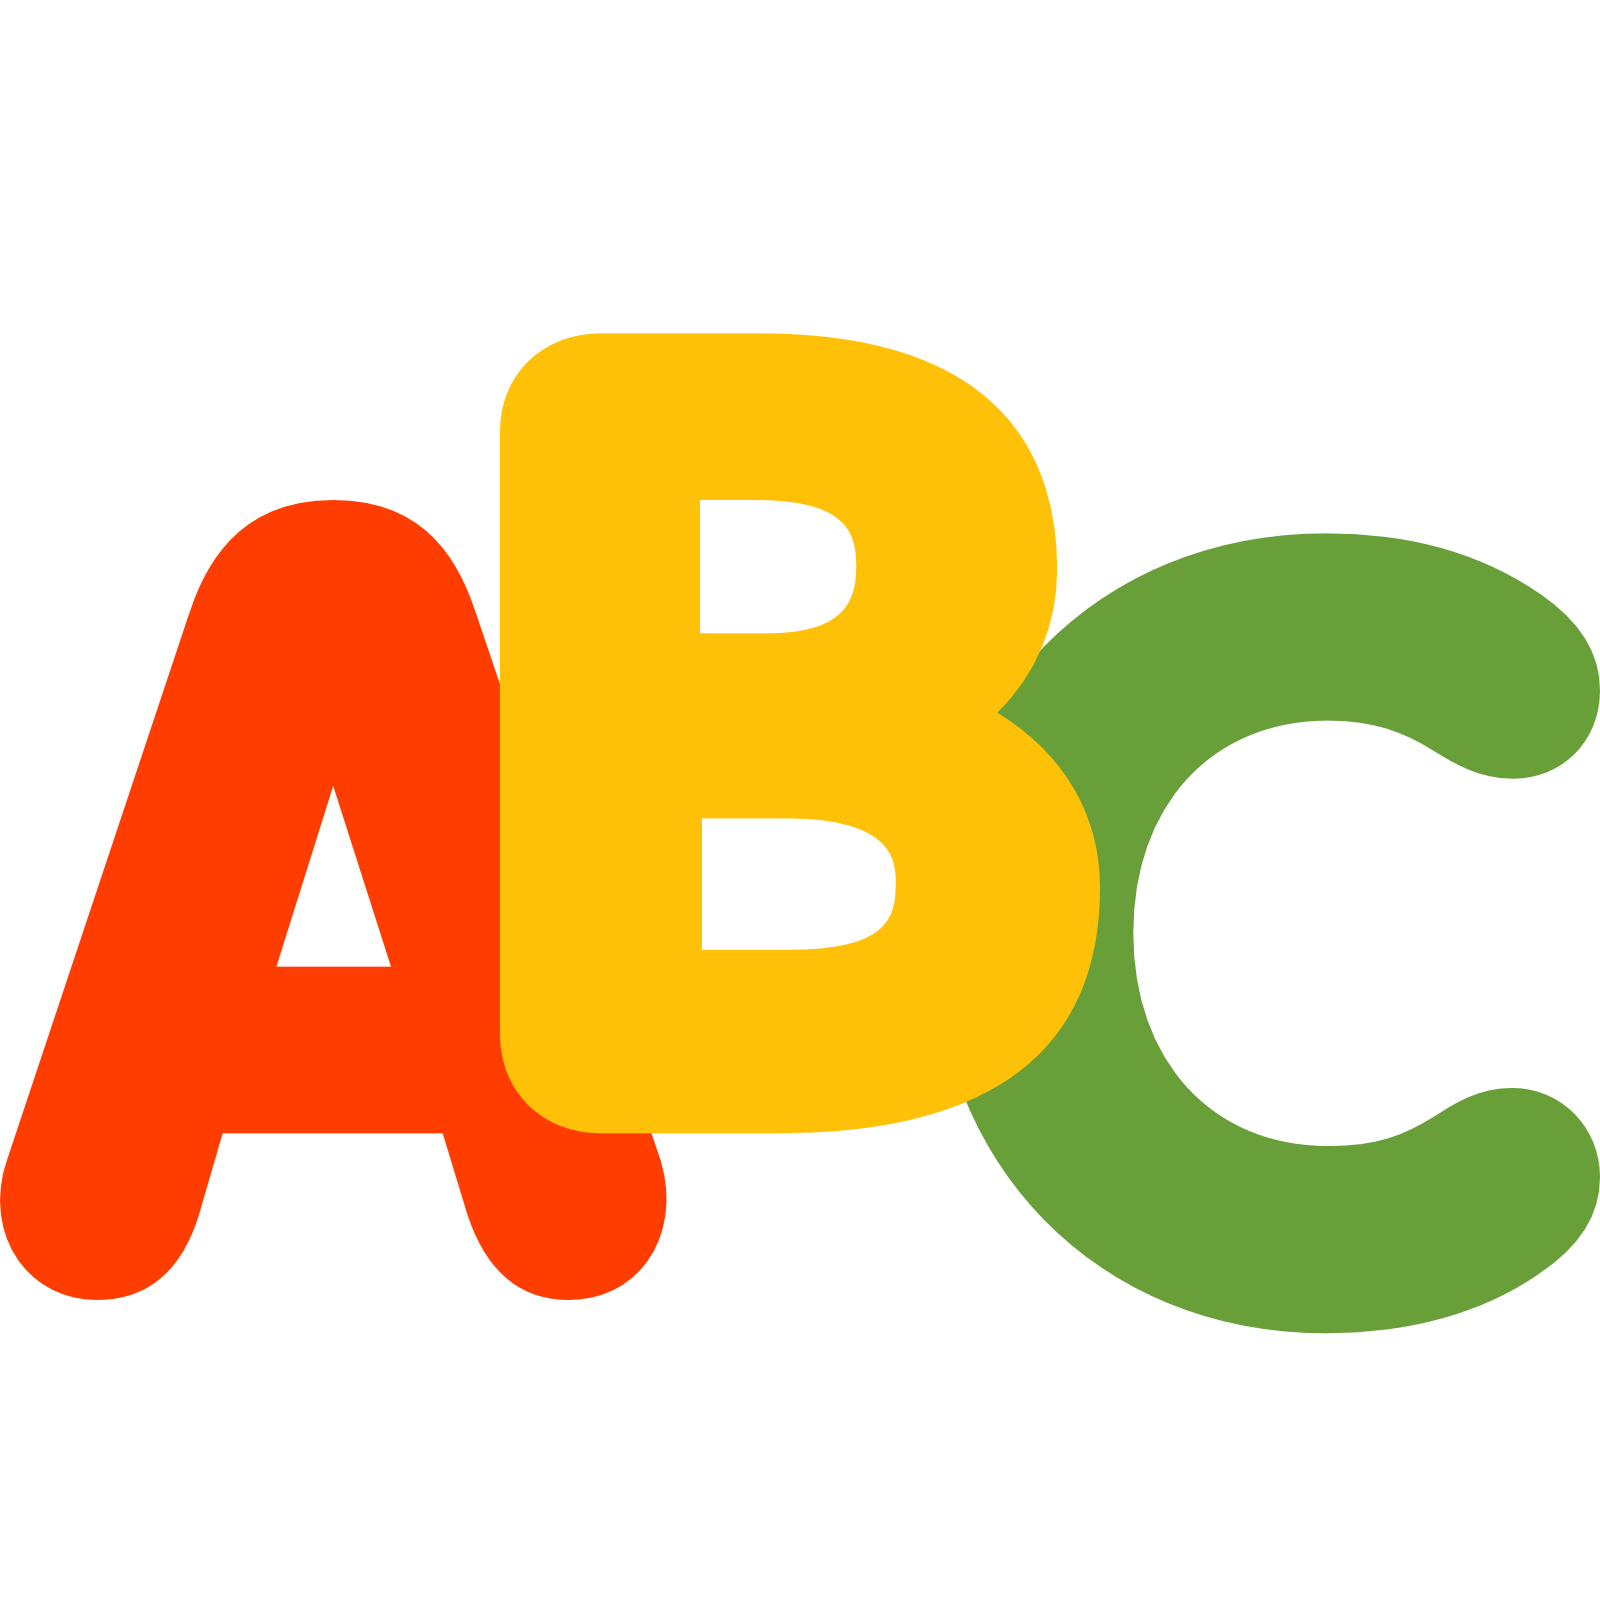 jpg black and white stock Abc clipart.  collection of png